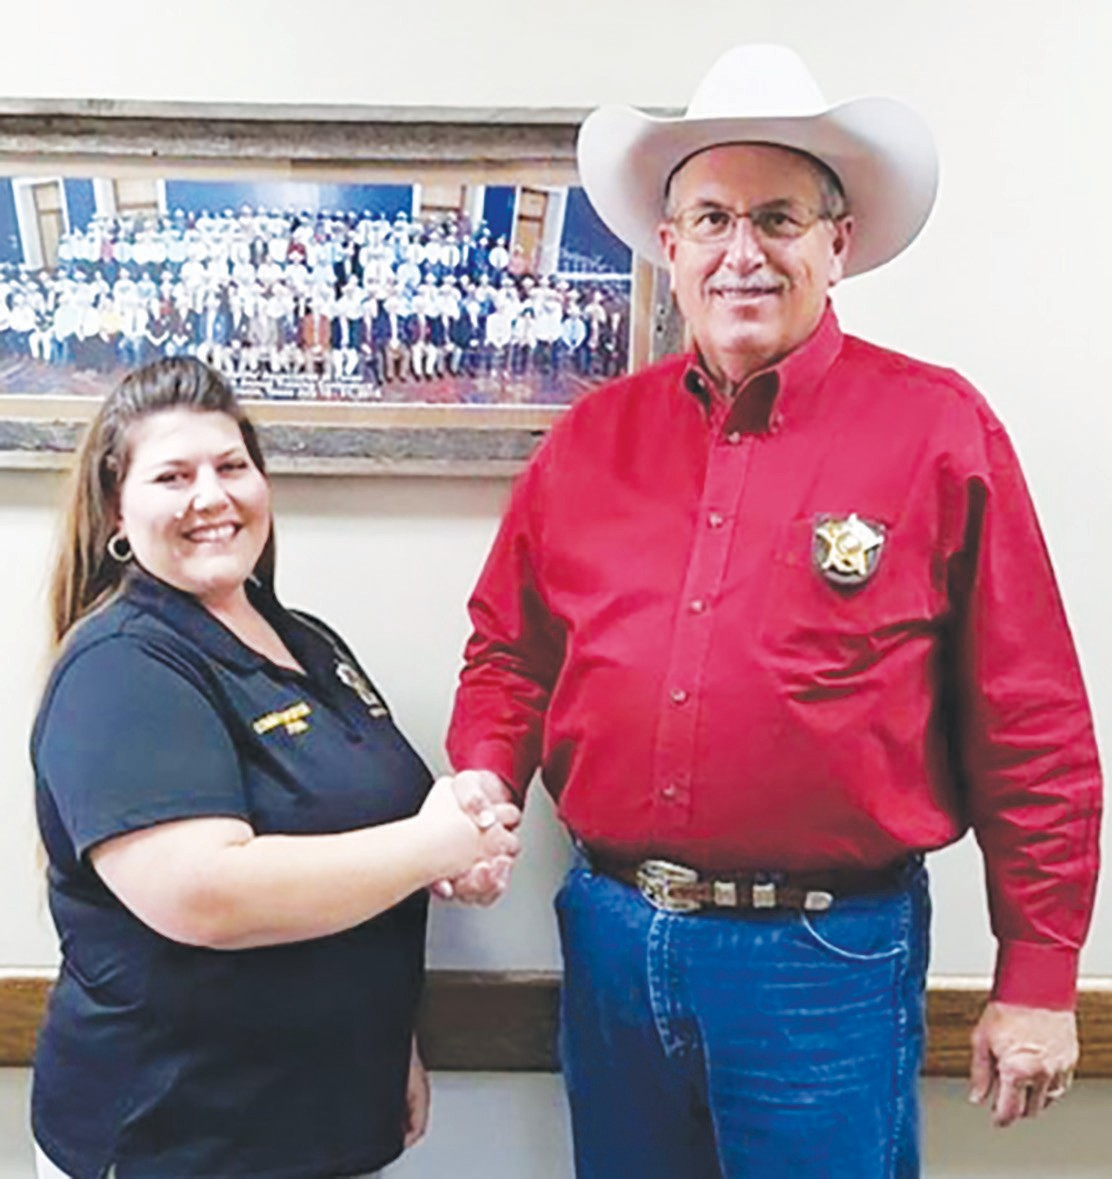 Jymie Perna was hired as the New Communications Supervisor and she will supervise the Atascosa County Sheriff Department's Dispatchers and 911 Telecommunicators. This position was created by the Atascosa County Commissioner's Court at the request of Sheriff David Soward.